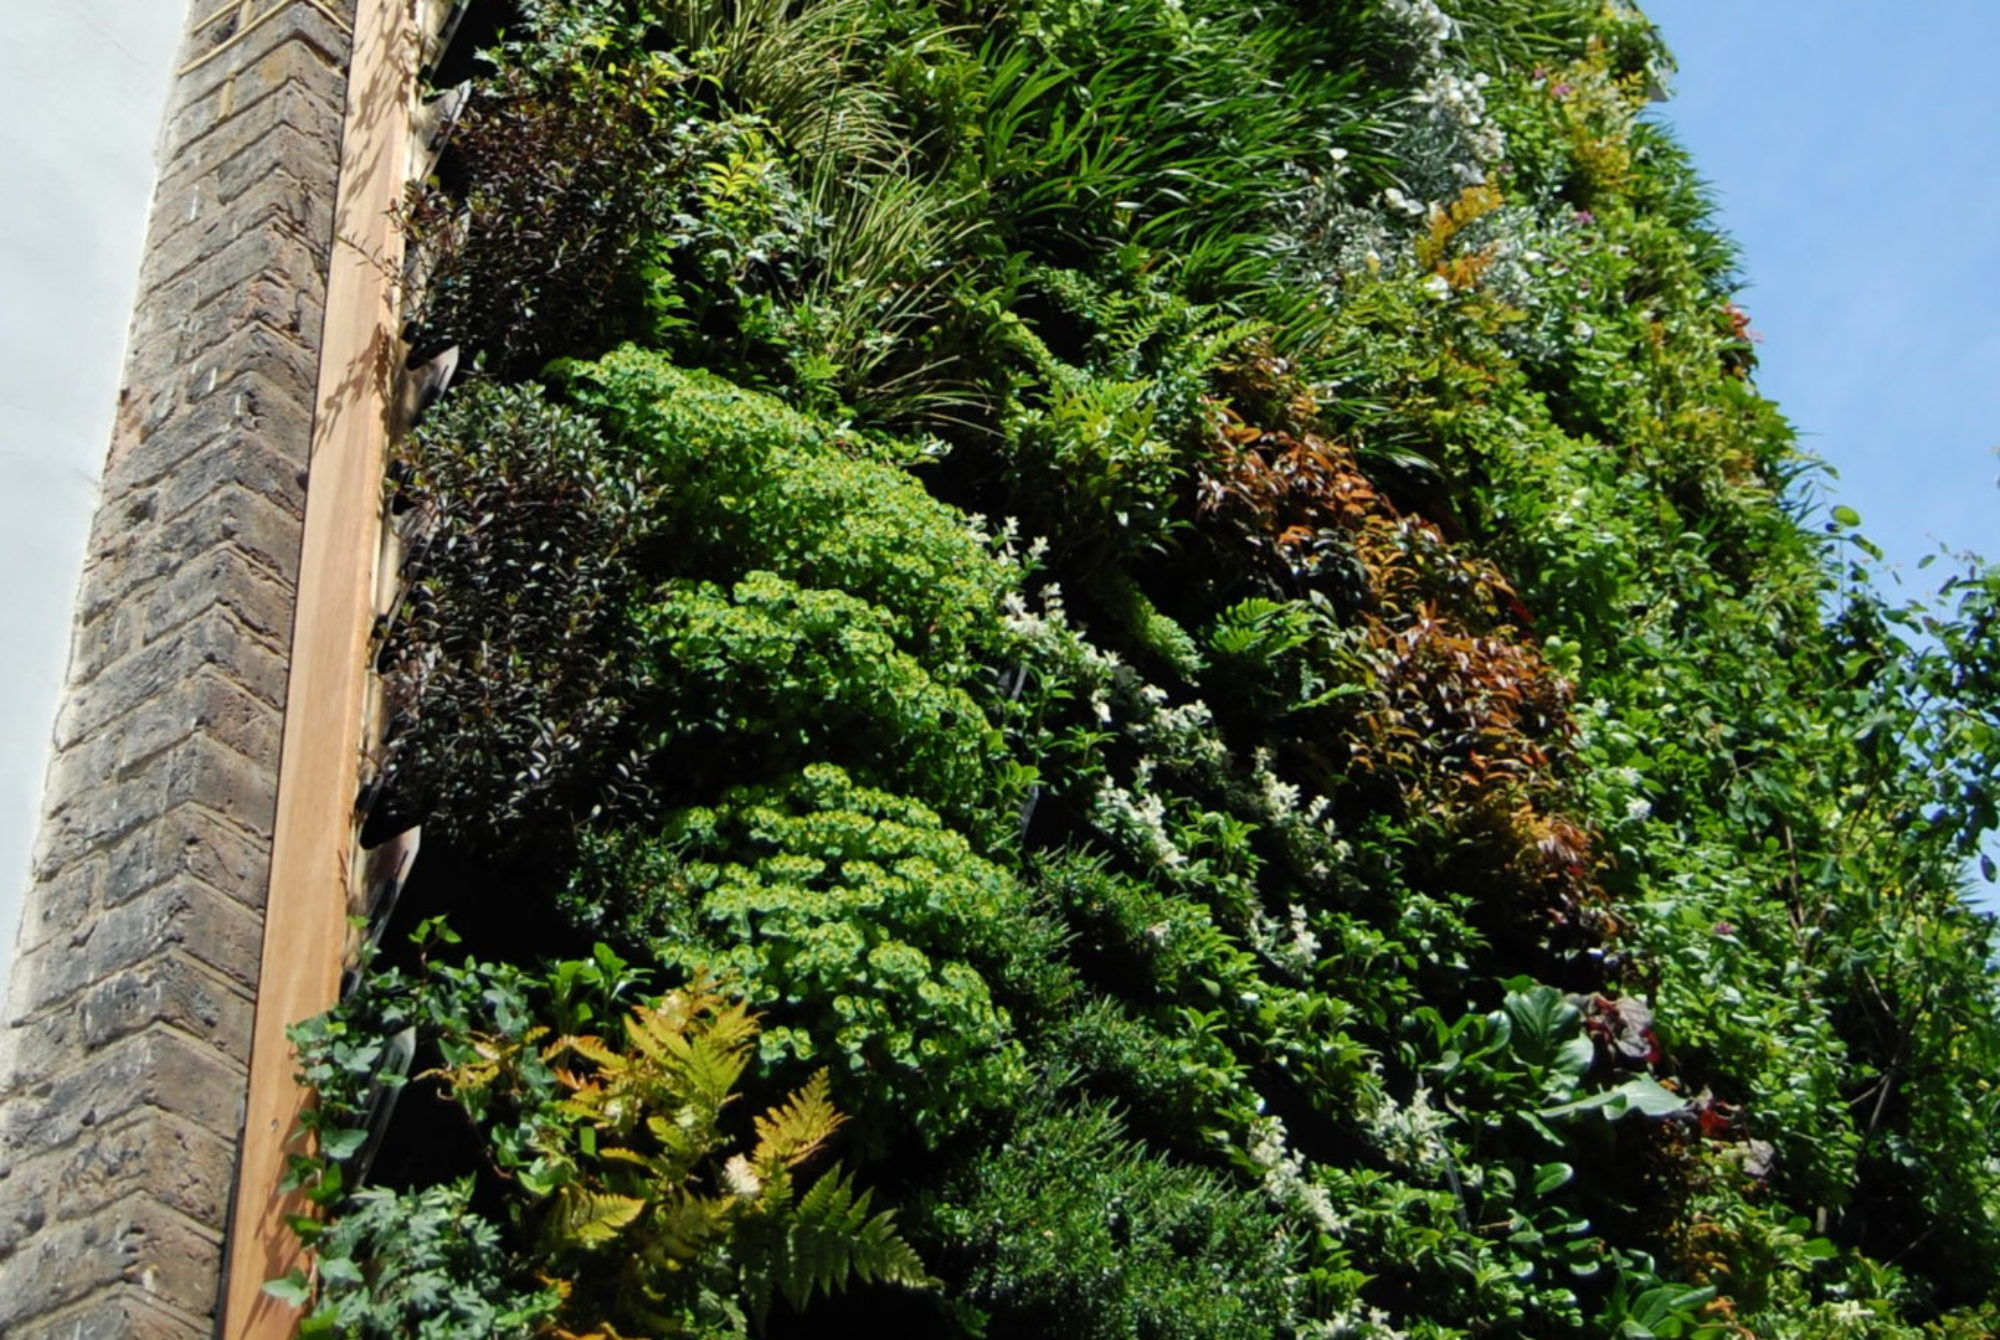 The Living Wall